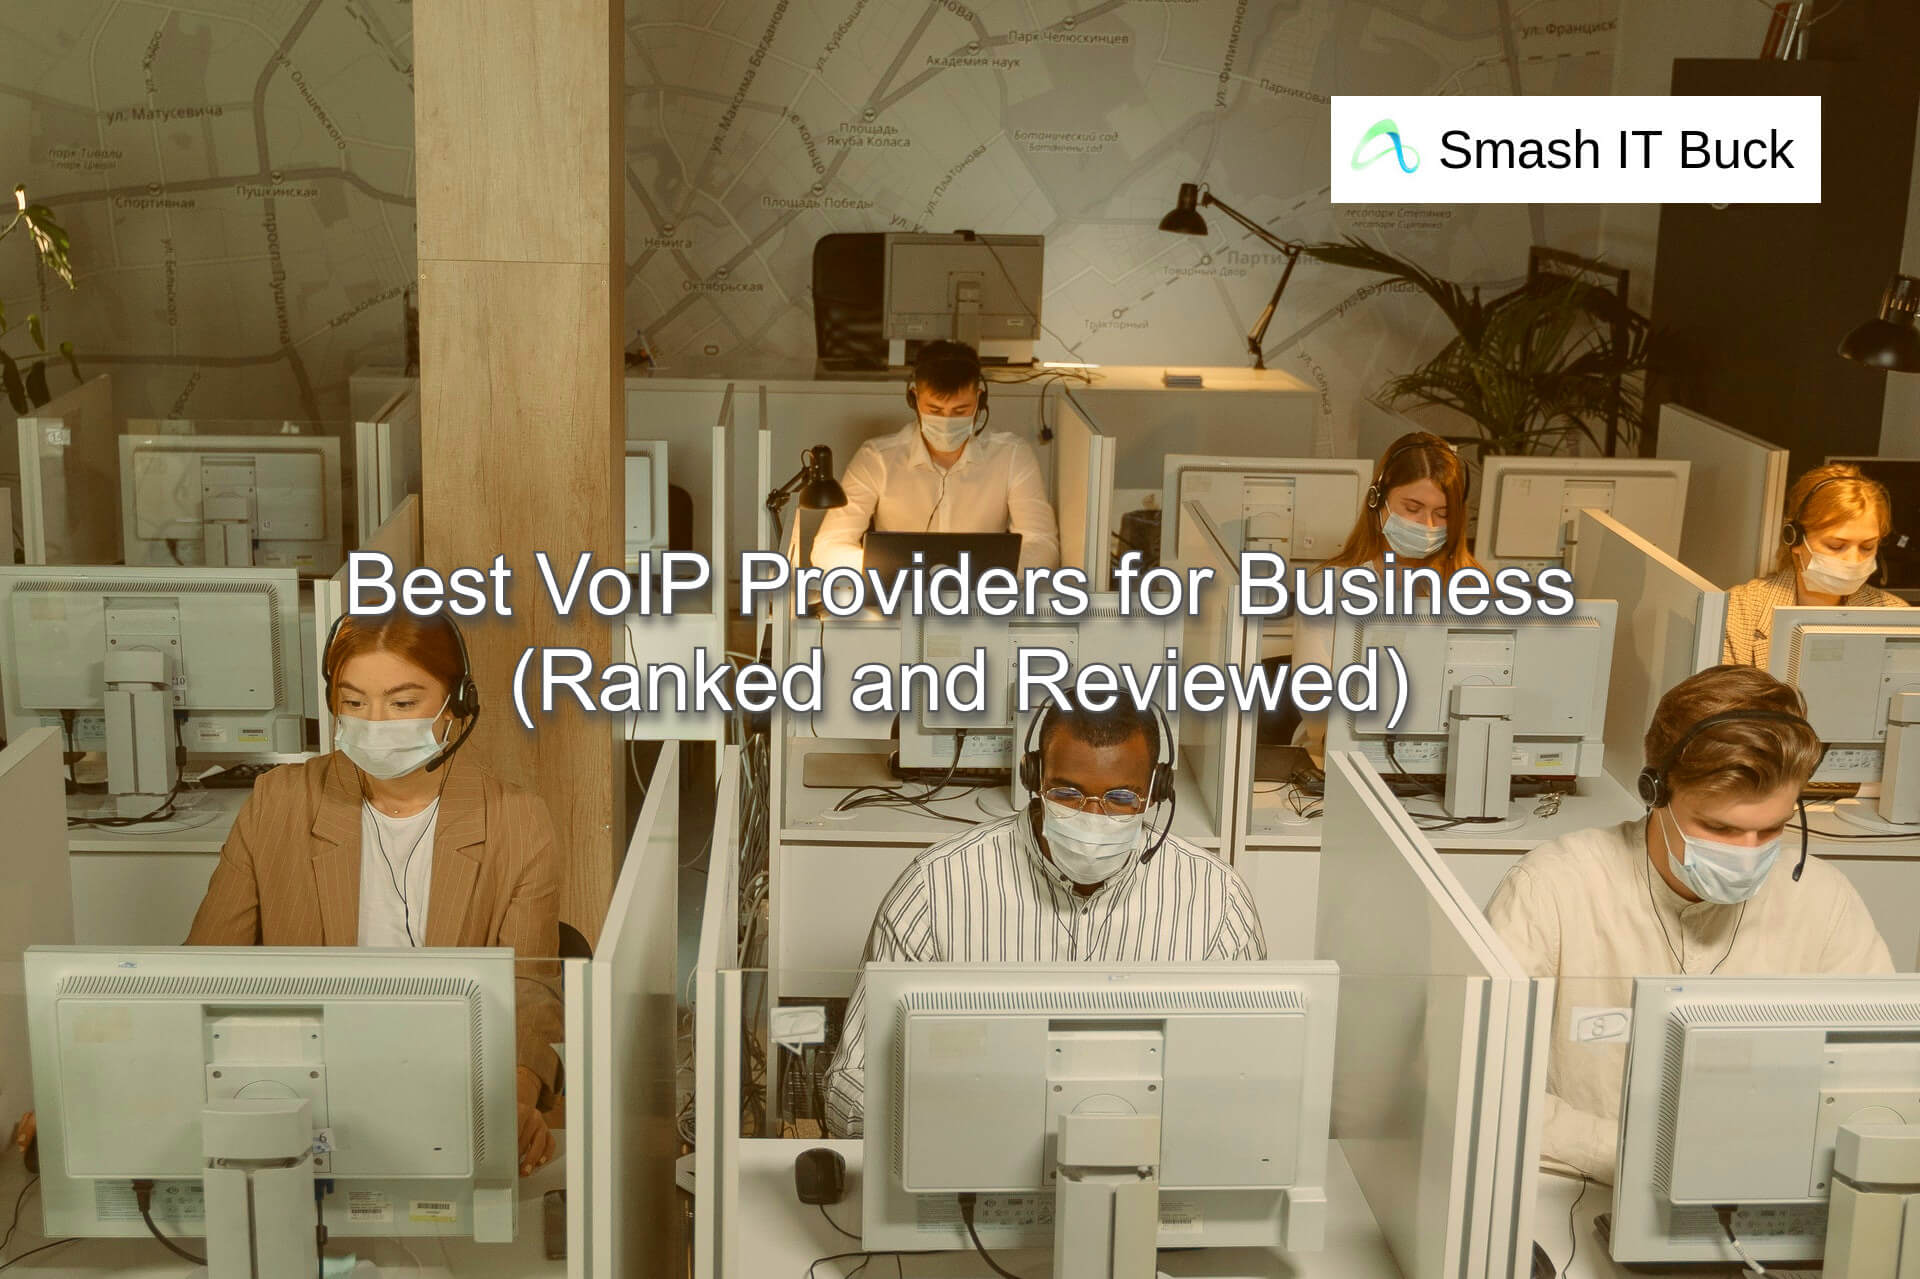 Best VoIP Providers for your Business in 2021